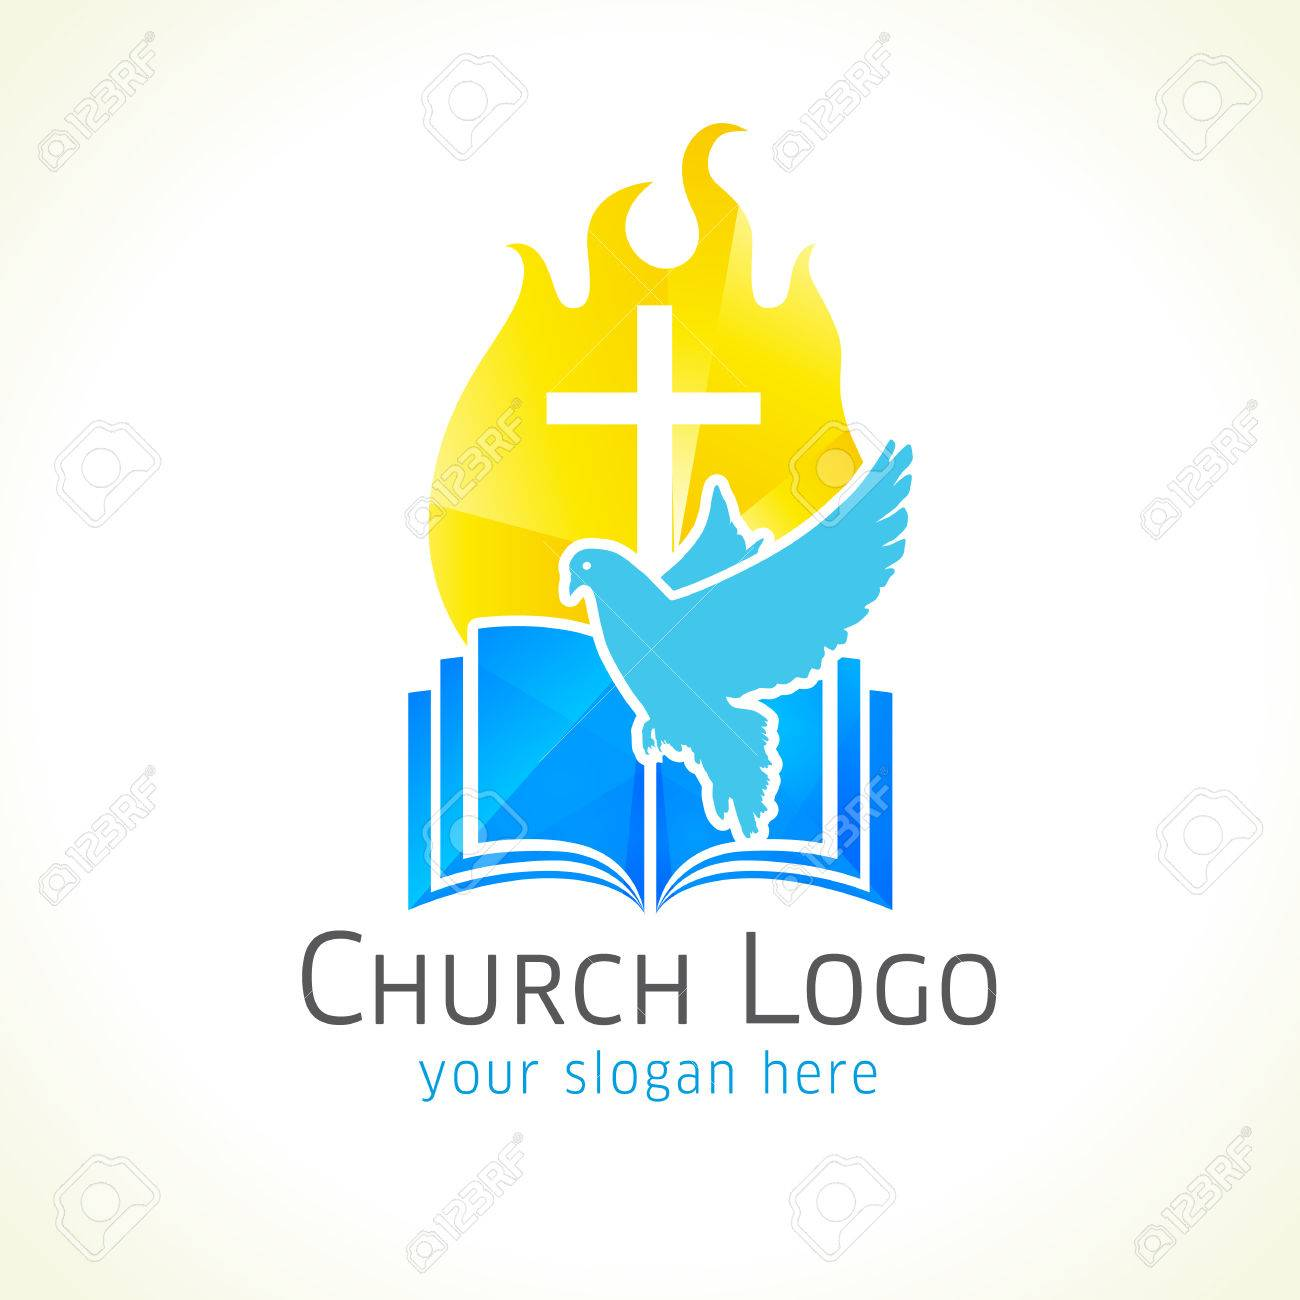 Christian church vector logo golden glowing crucifix fire dove christian church vector logo golden glowing crucifix fire dove bible fiery biocorpaavc